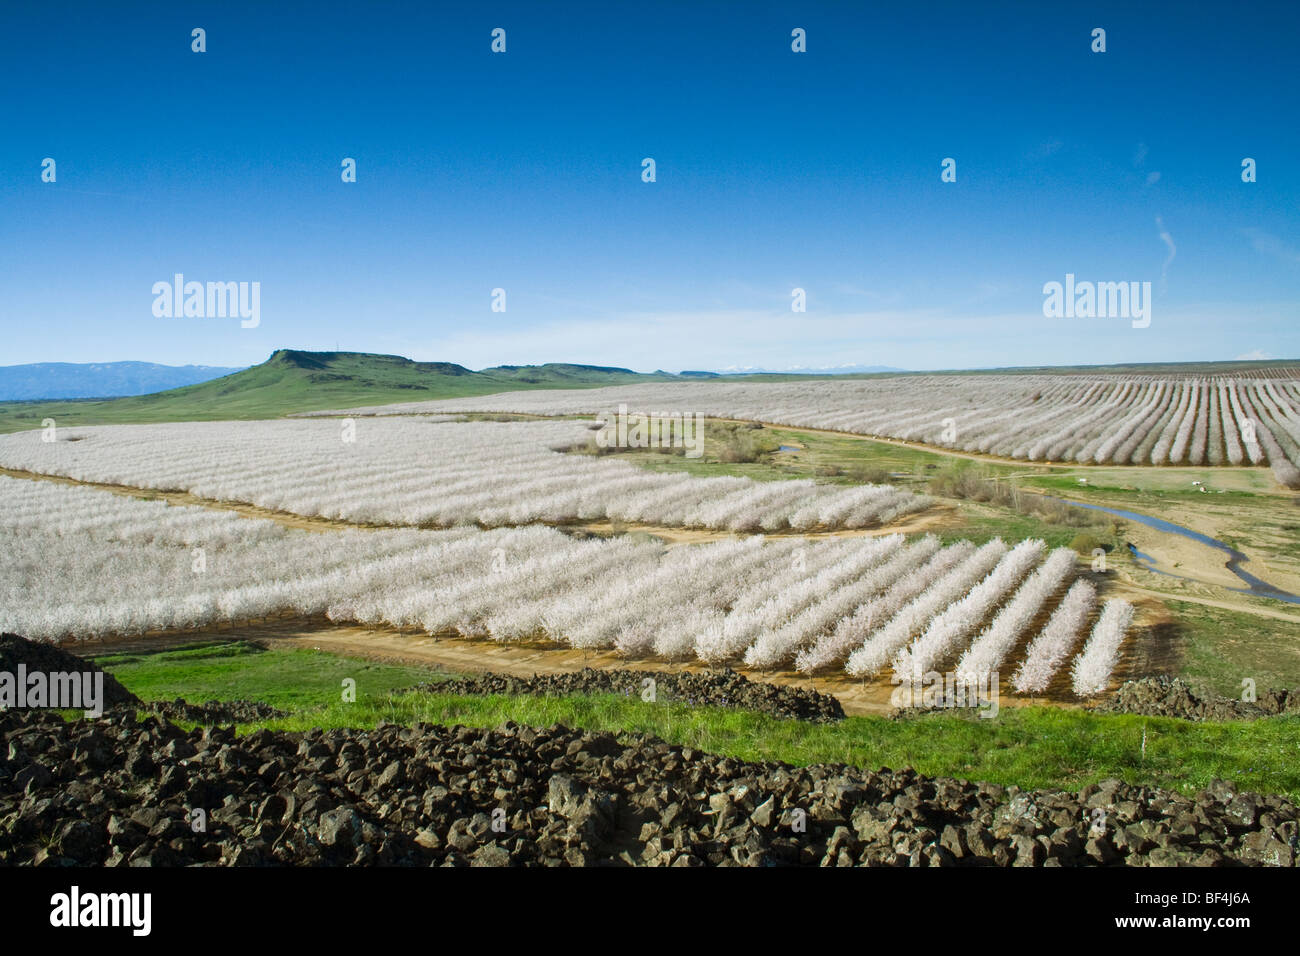 Agriculture - Elevated view of an almond orchard in full bloom in late Winter / Glenn County, California, USA. - Stock Image